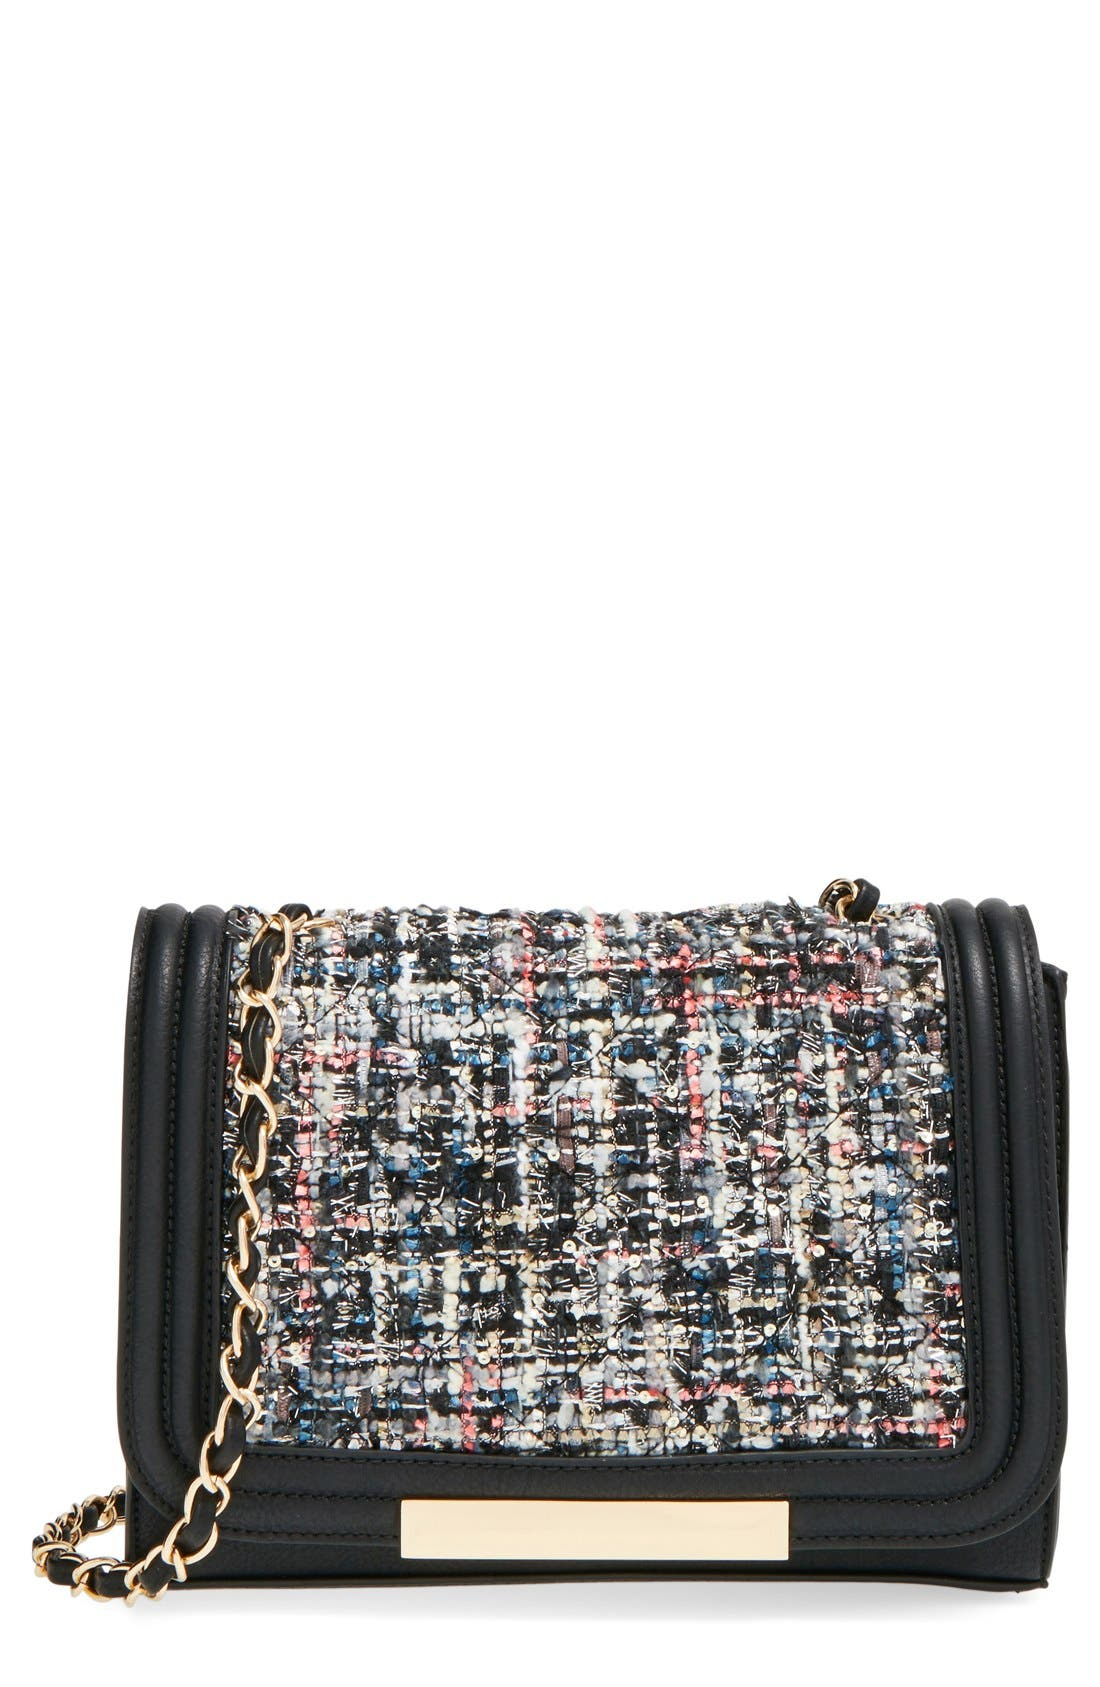 Alternate Image 1 Selected - Sole Society 'Celeste' Quilted Sequin Crossbody Bag